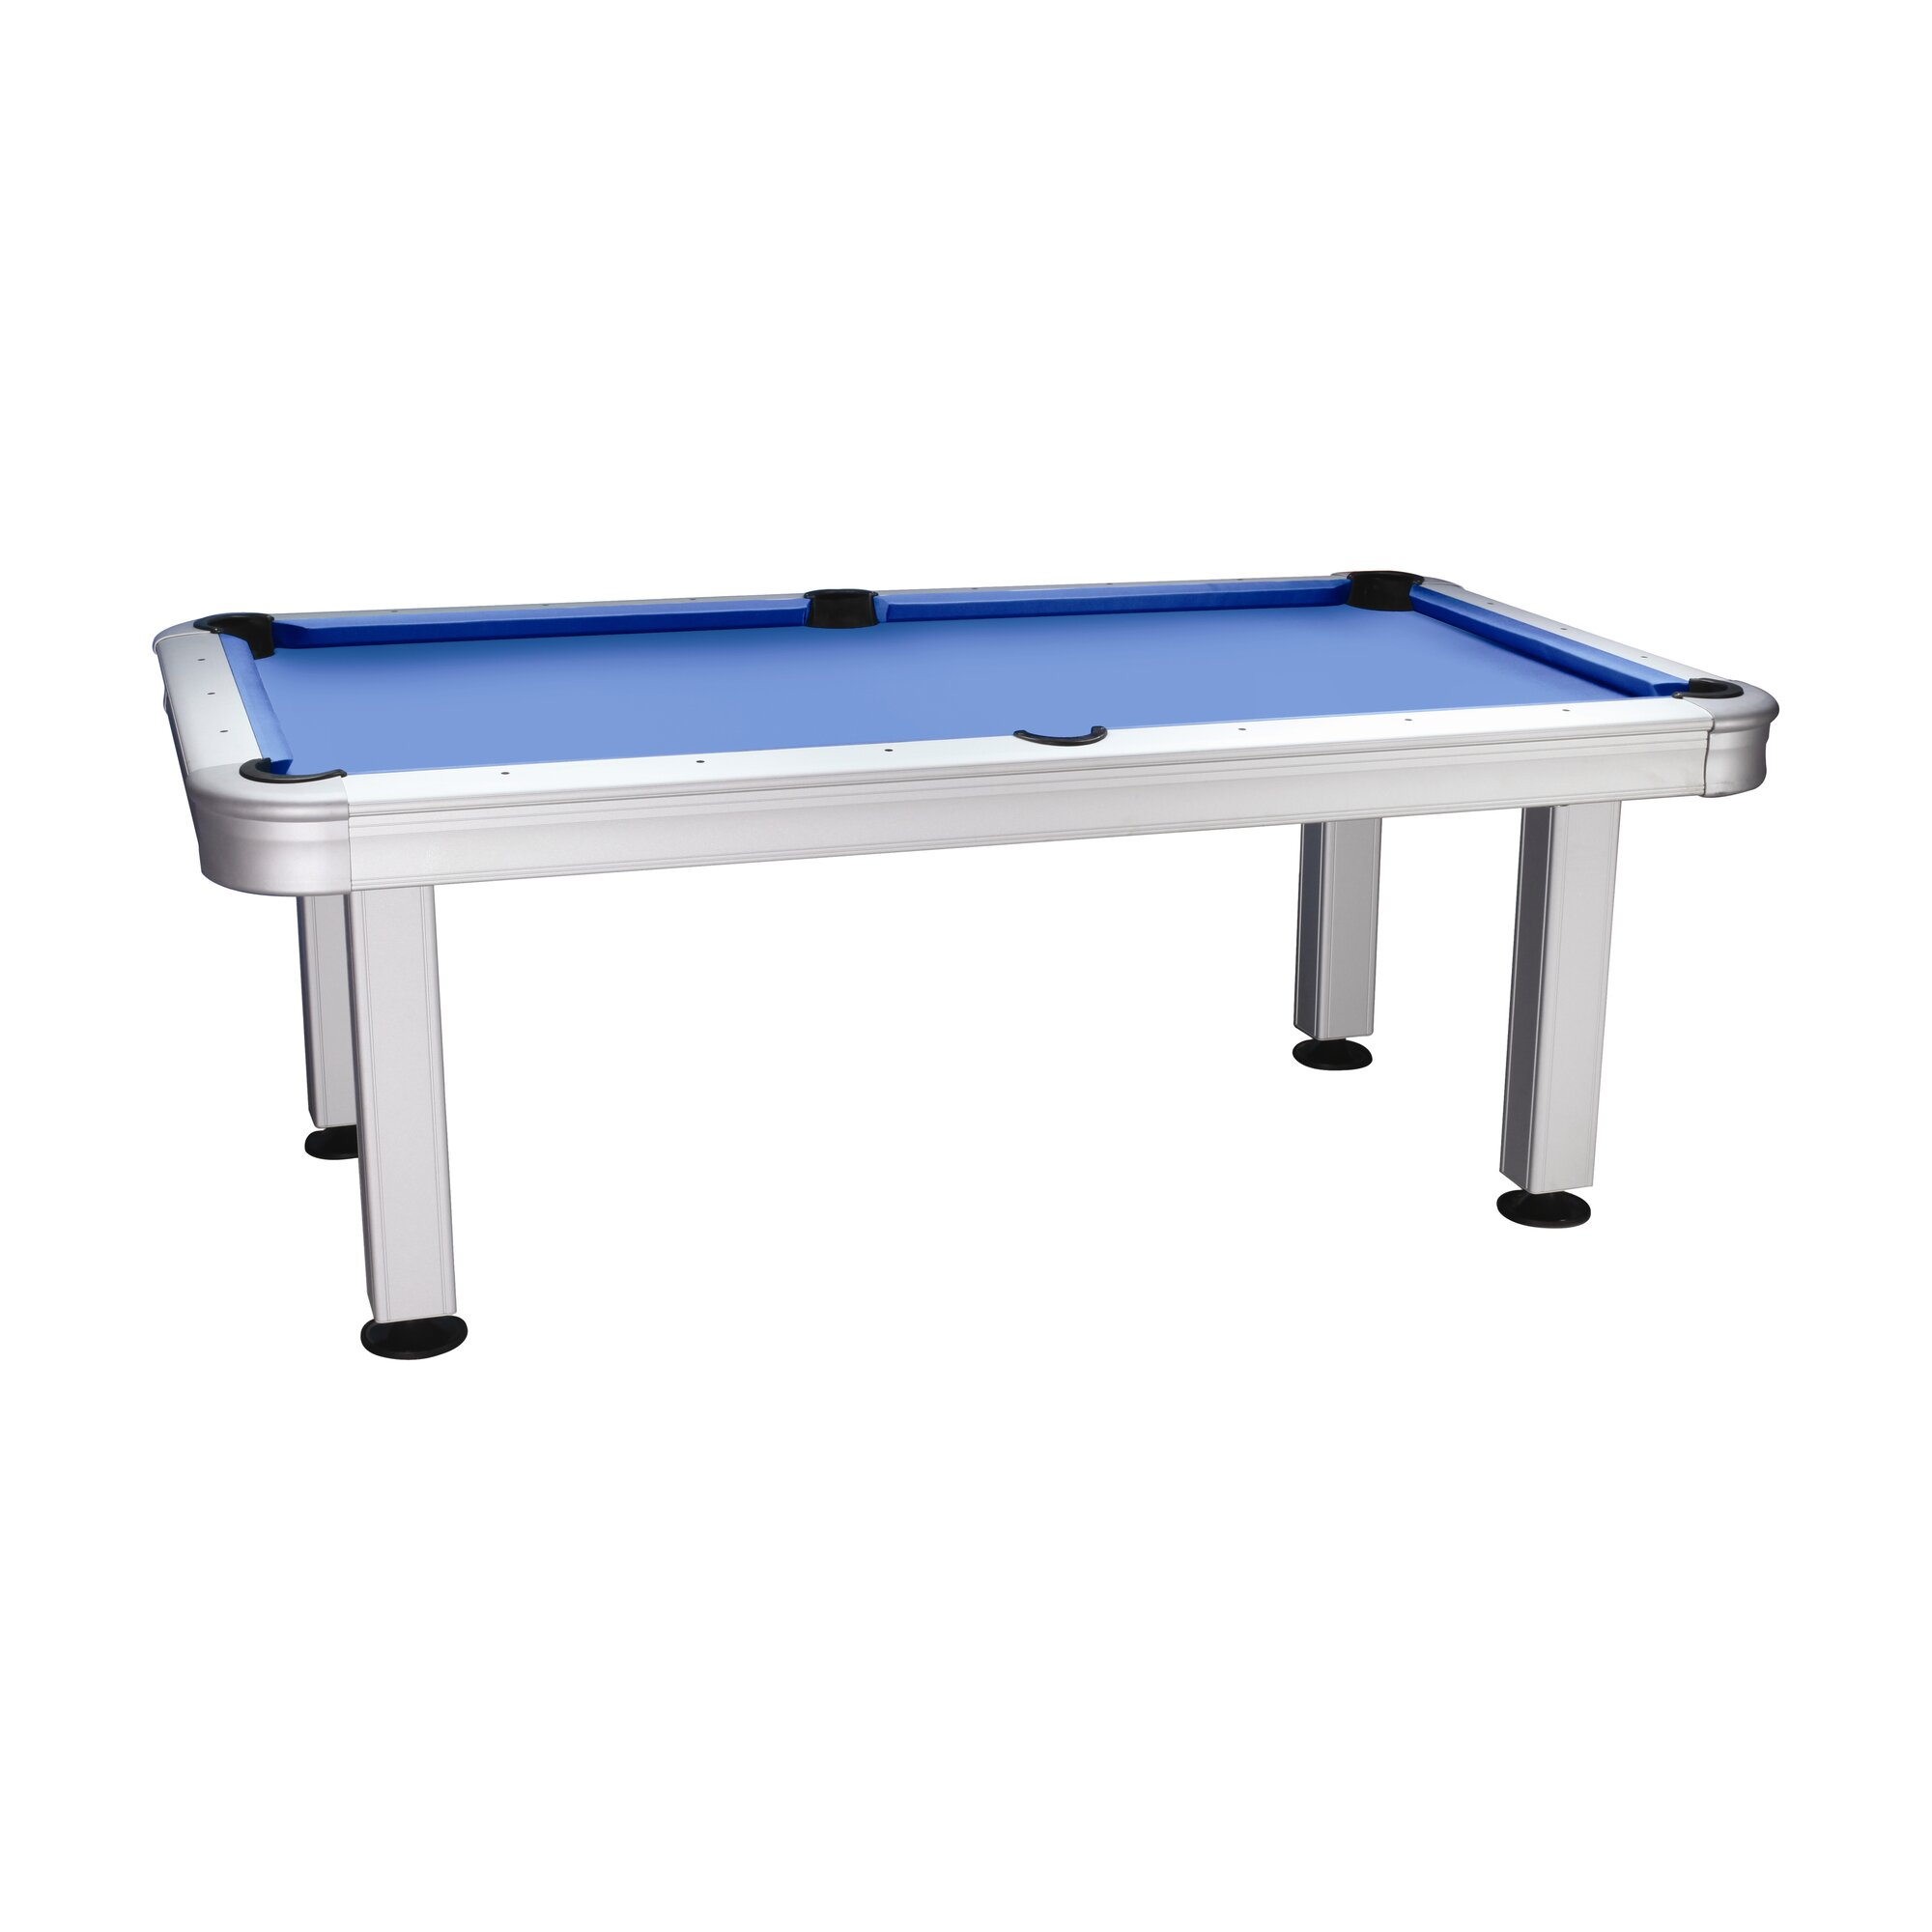 Artisan Designs Pool Table old world craftsmanship meets velvet smooth play courtesy of our new merrimack pool table Non Slate Outdoor 7 Pool Table